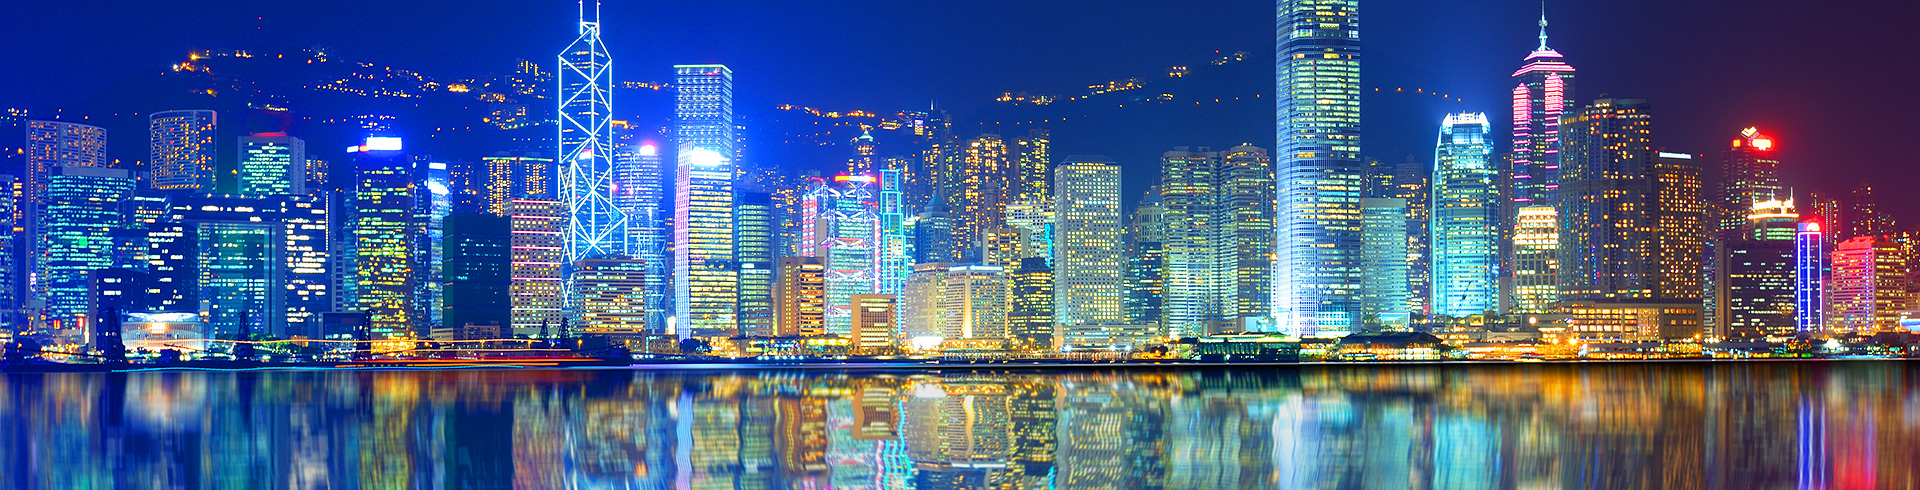 Discounted flight tickets to Hong Kong  - IFlyFirstClass